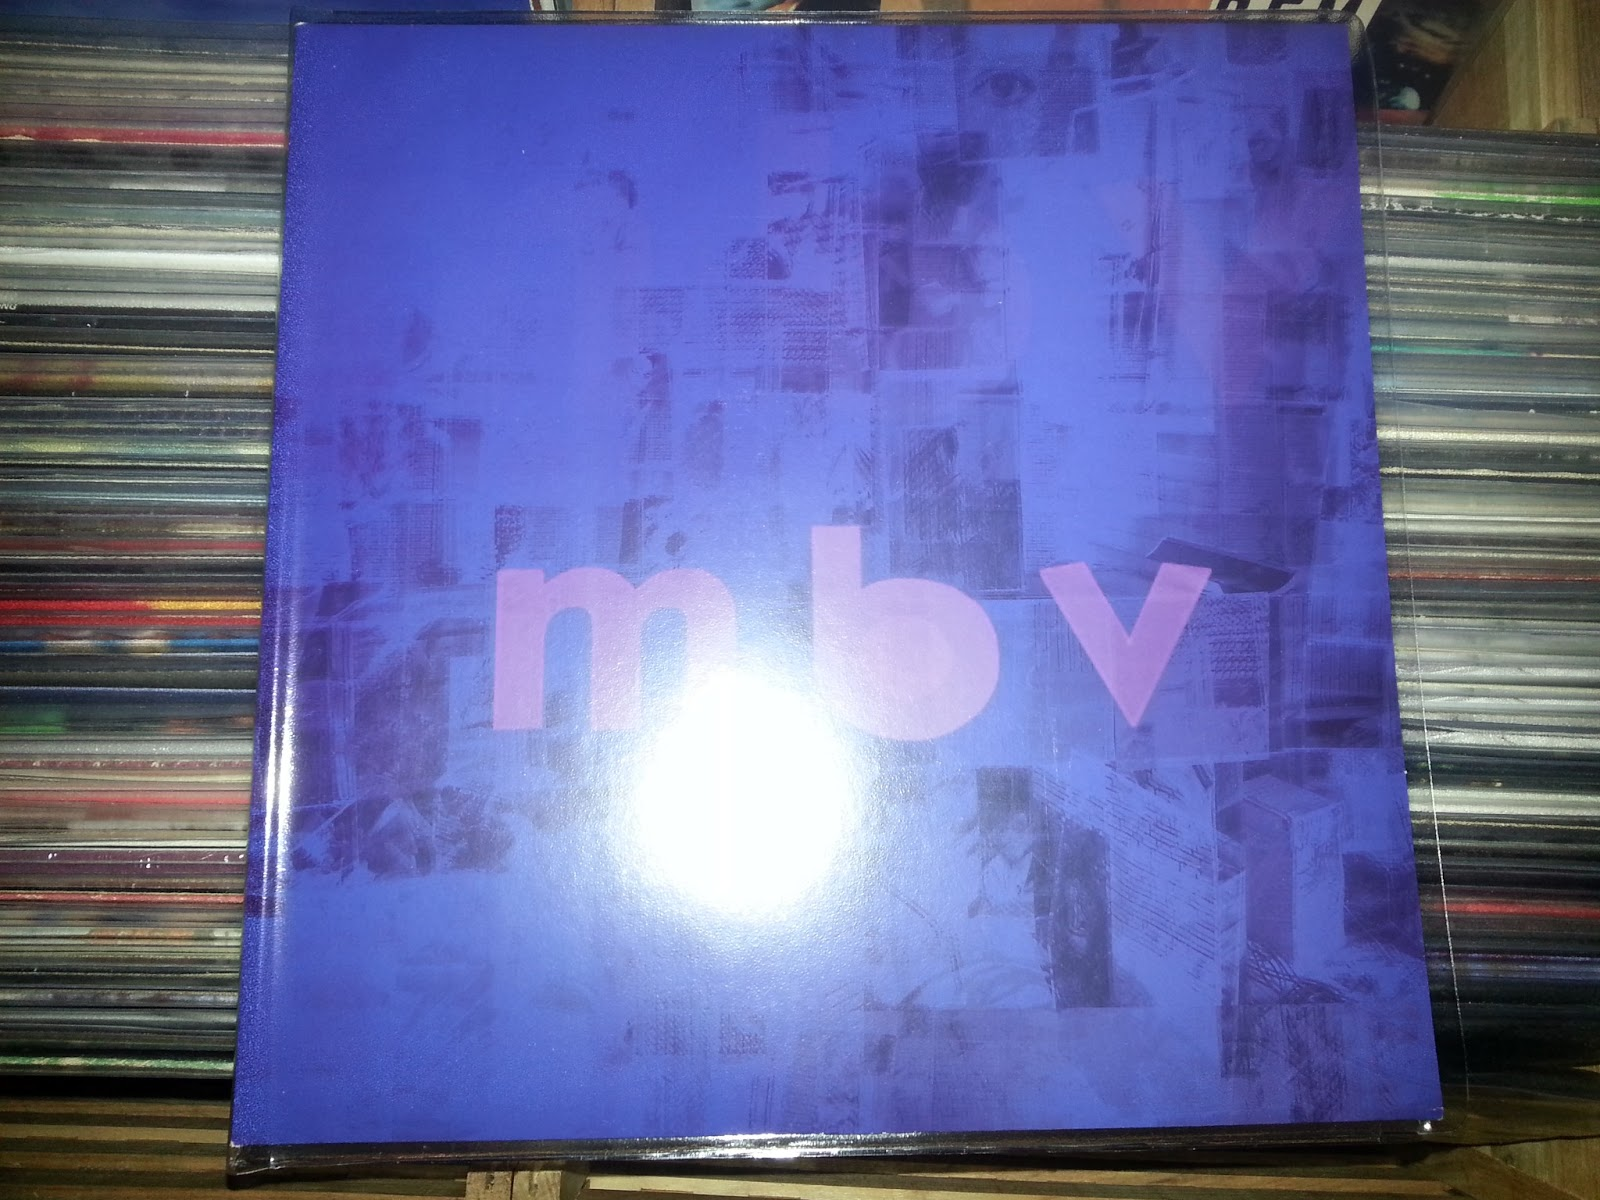 ... Valentine   M B V Vinyl. Yesterday It Finally Arrived, 22 Years After  The Last Album Was Released. My Bloody Valentines New Album Arrived In The  Mail!